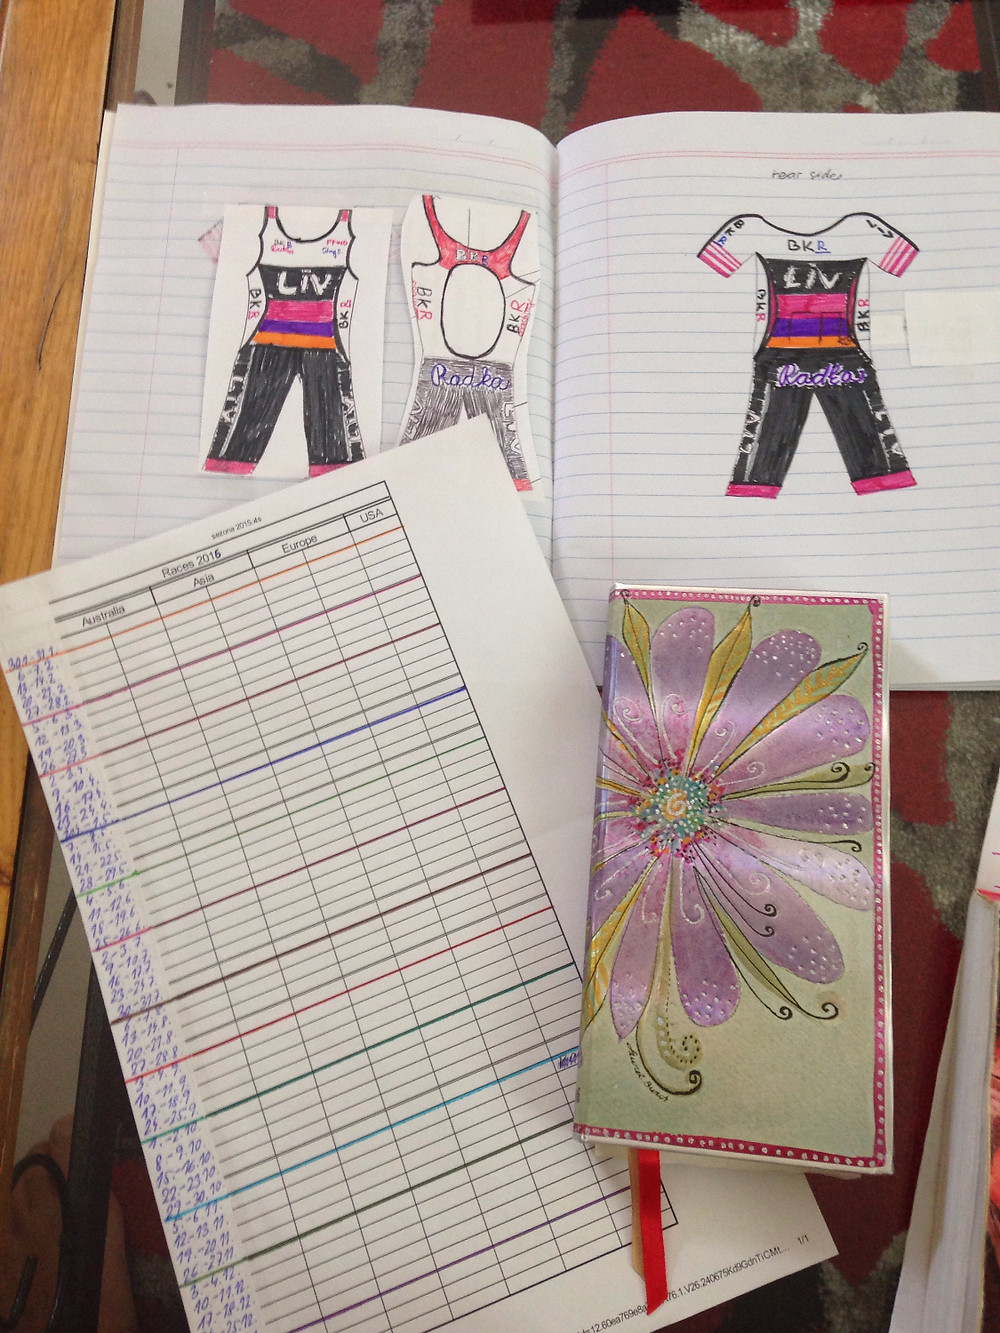 Plan your races and design your own tri kit